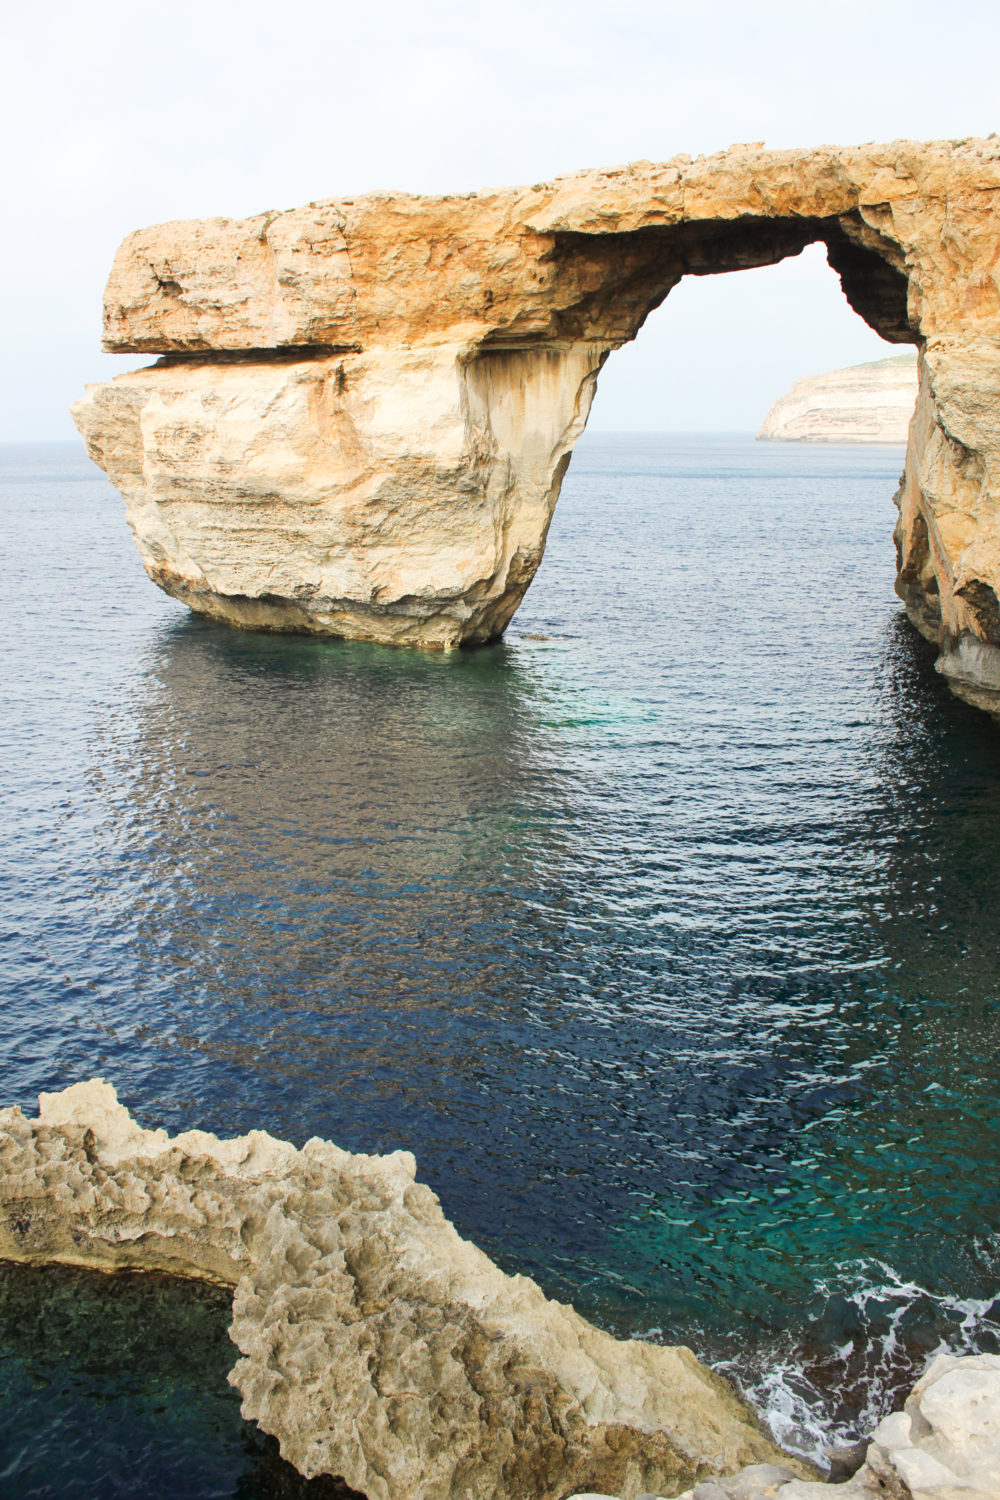 Malta azure window. guide to Malta